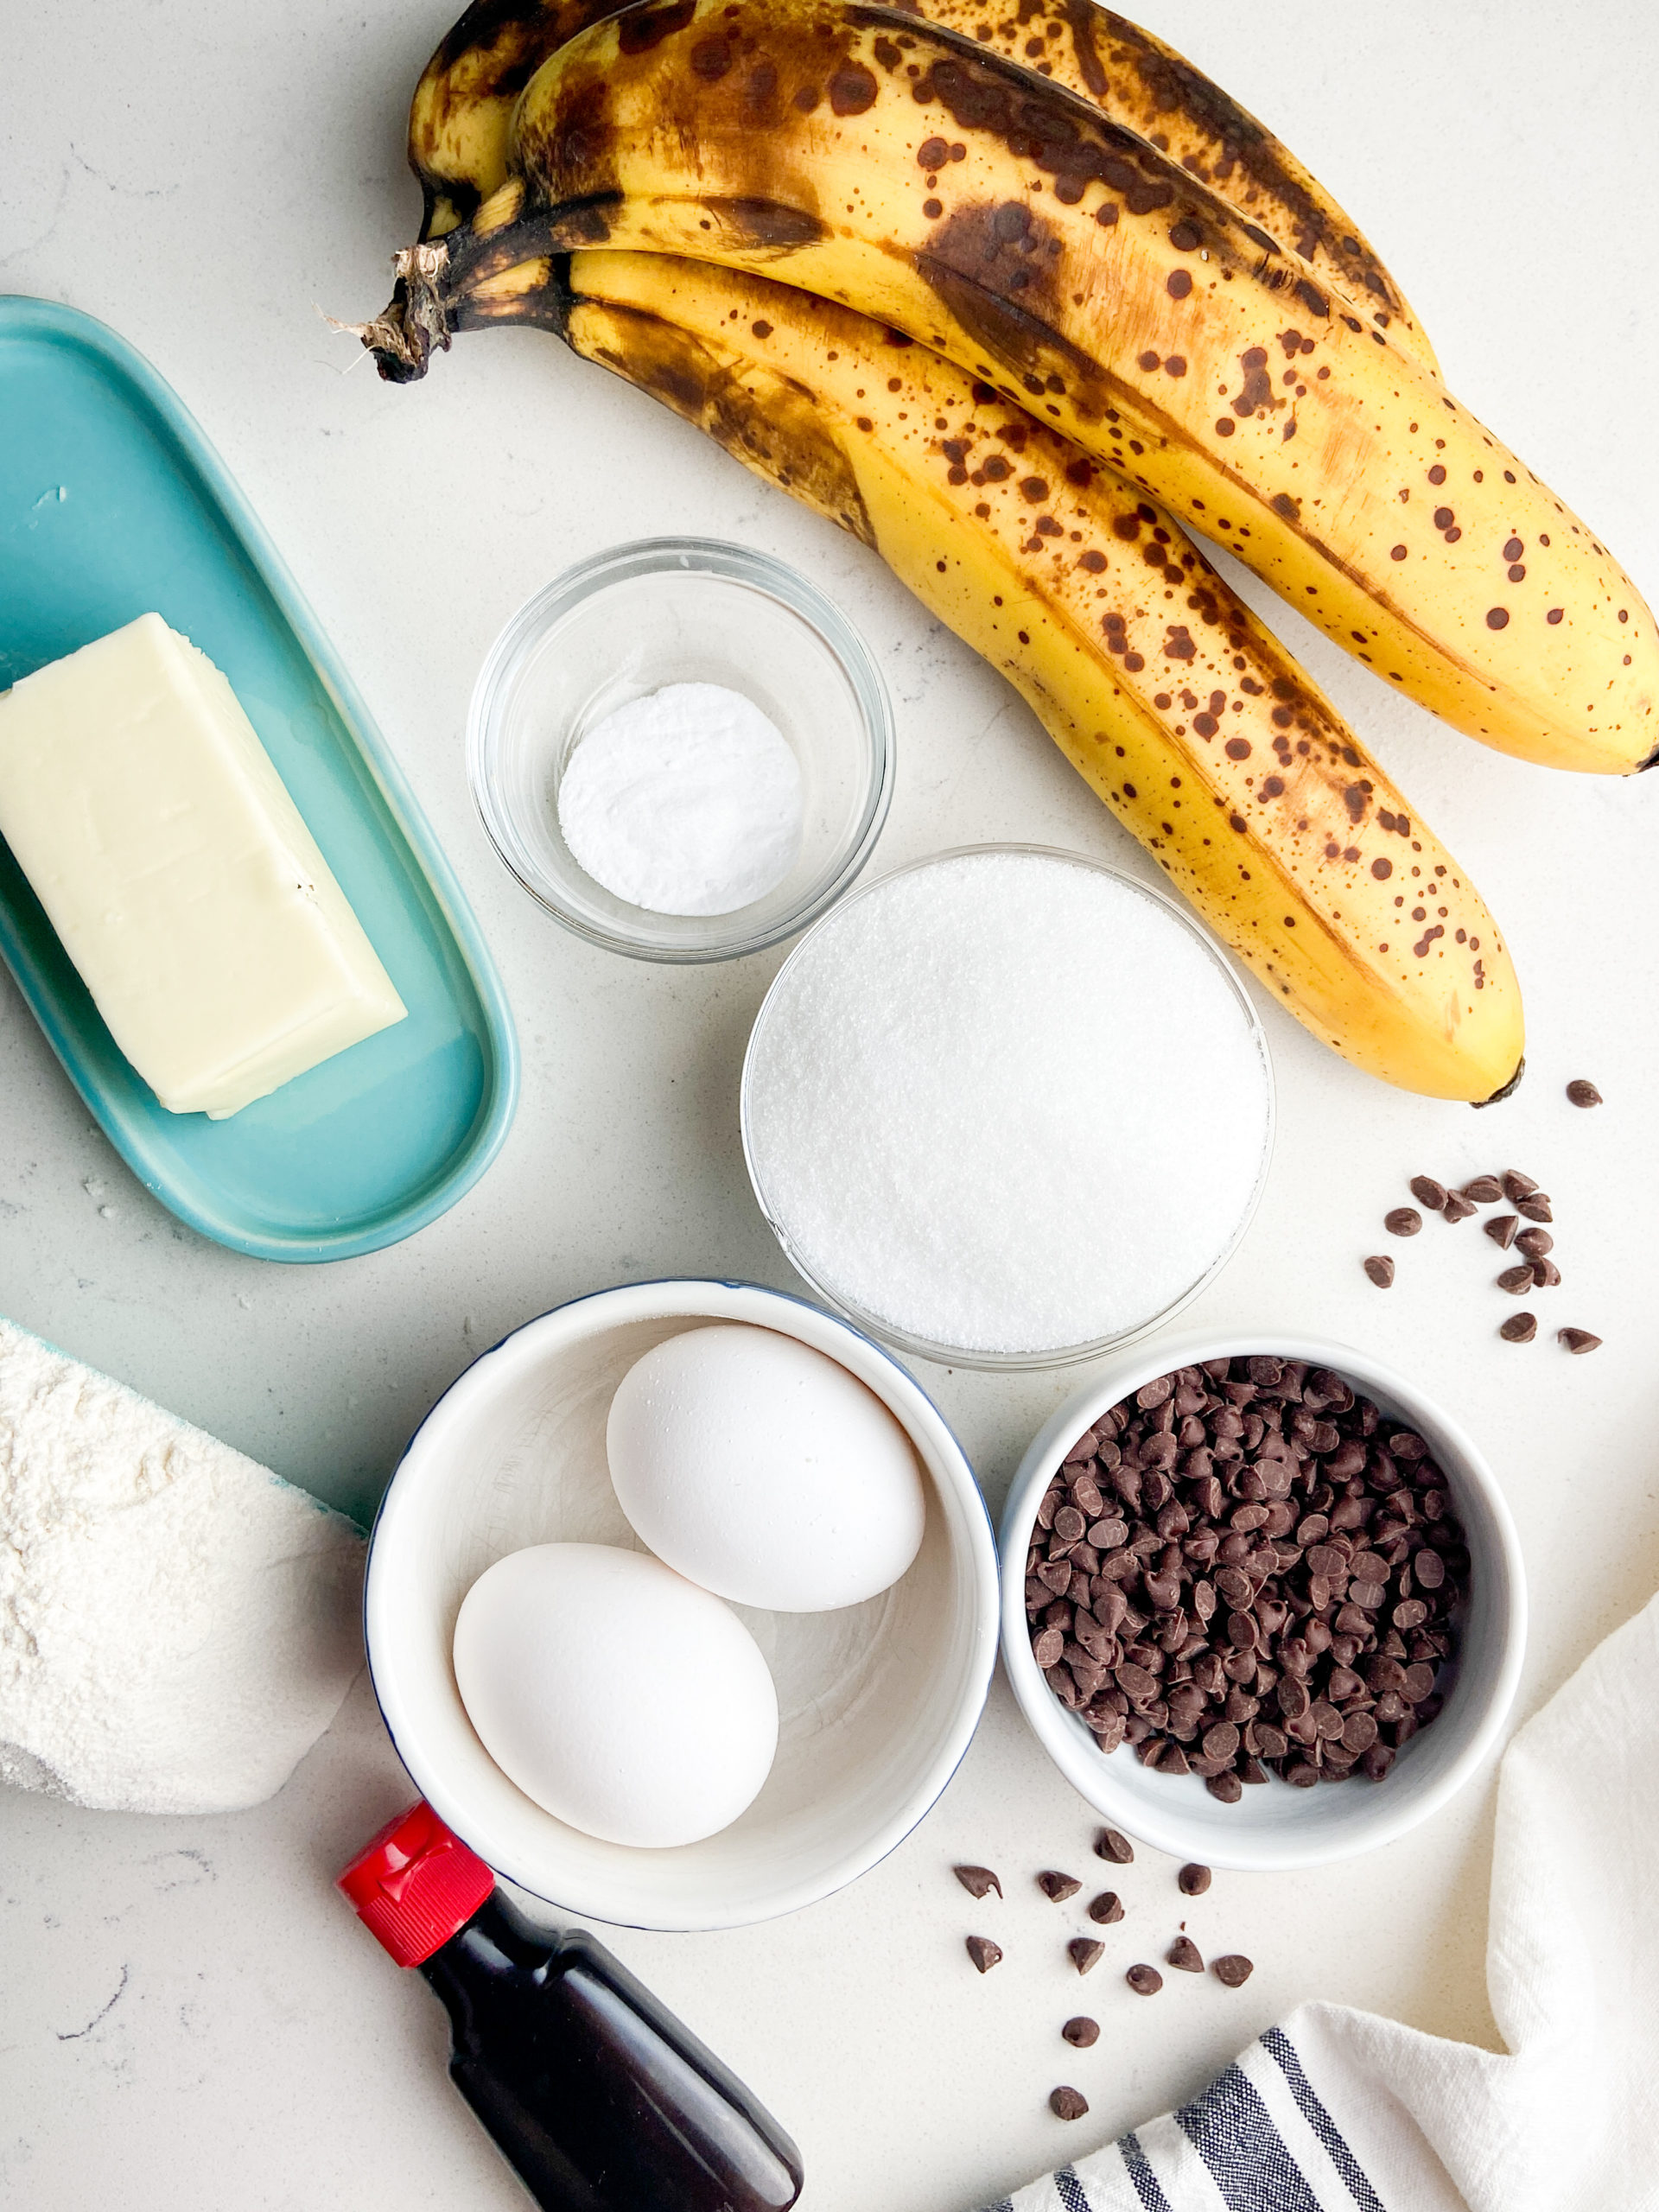 Overhead photo of ingredients needed to make chocolate chip banana bread.